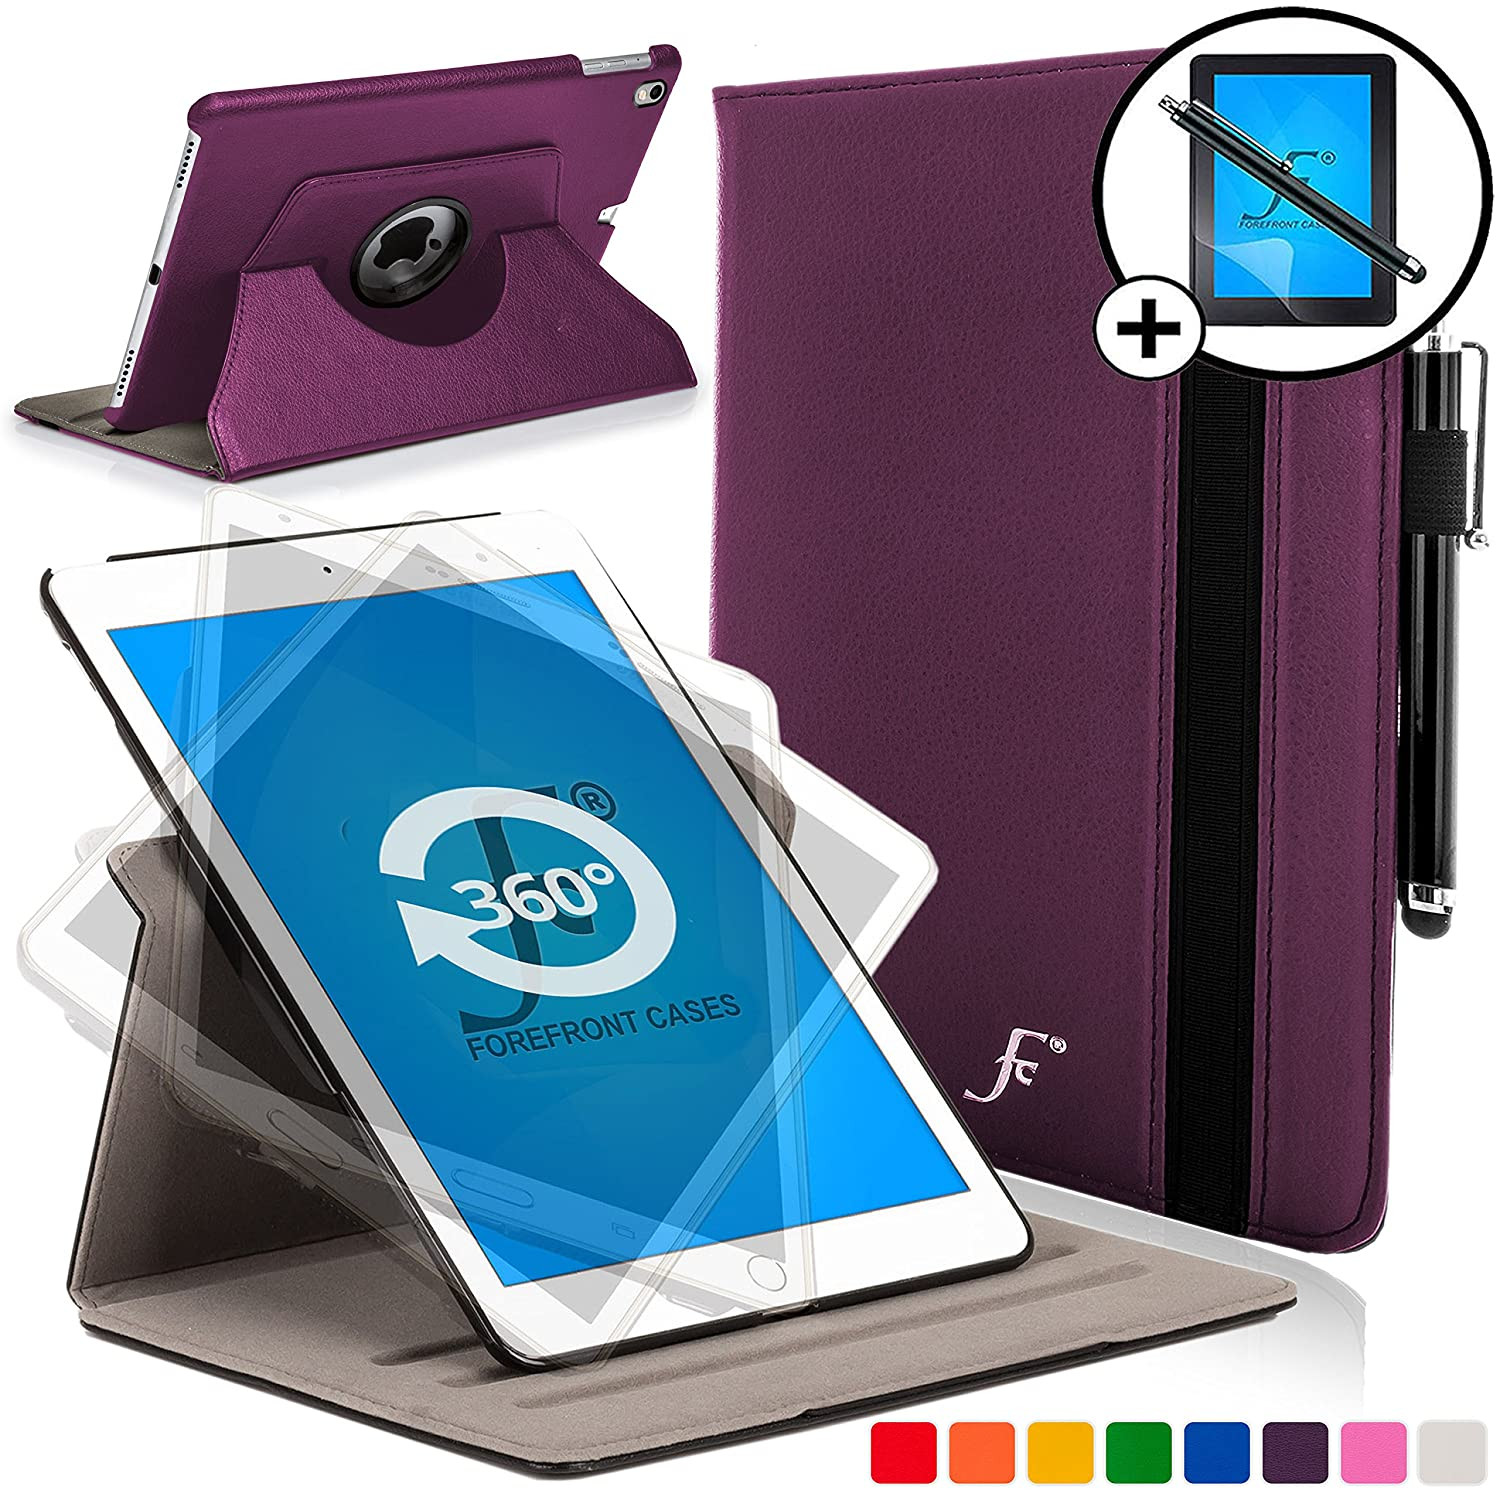 BLACK STYLUS /& SCREEN PROTECTOR 4th Generation - 2014 Model Rotating Smart Case Cover Stand Forefront Cases/®  Fire HD 7 Extra Padded Rugged with full device protection and Smart Auto Sleep Wake function